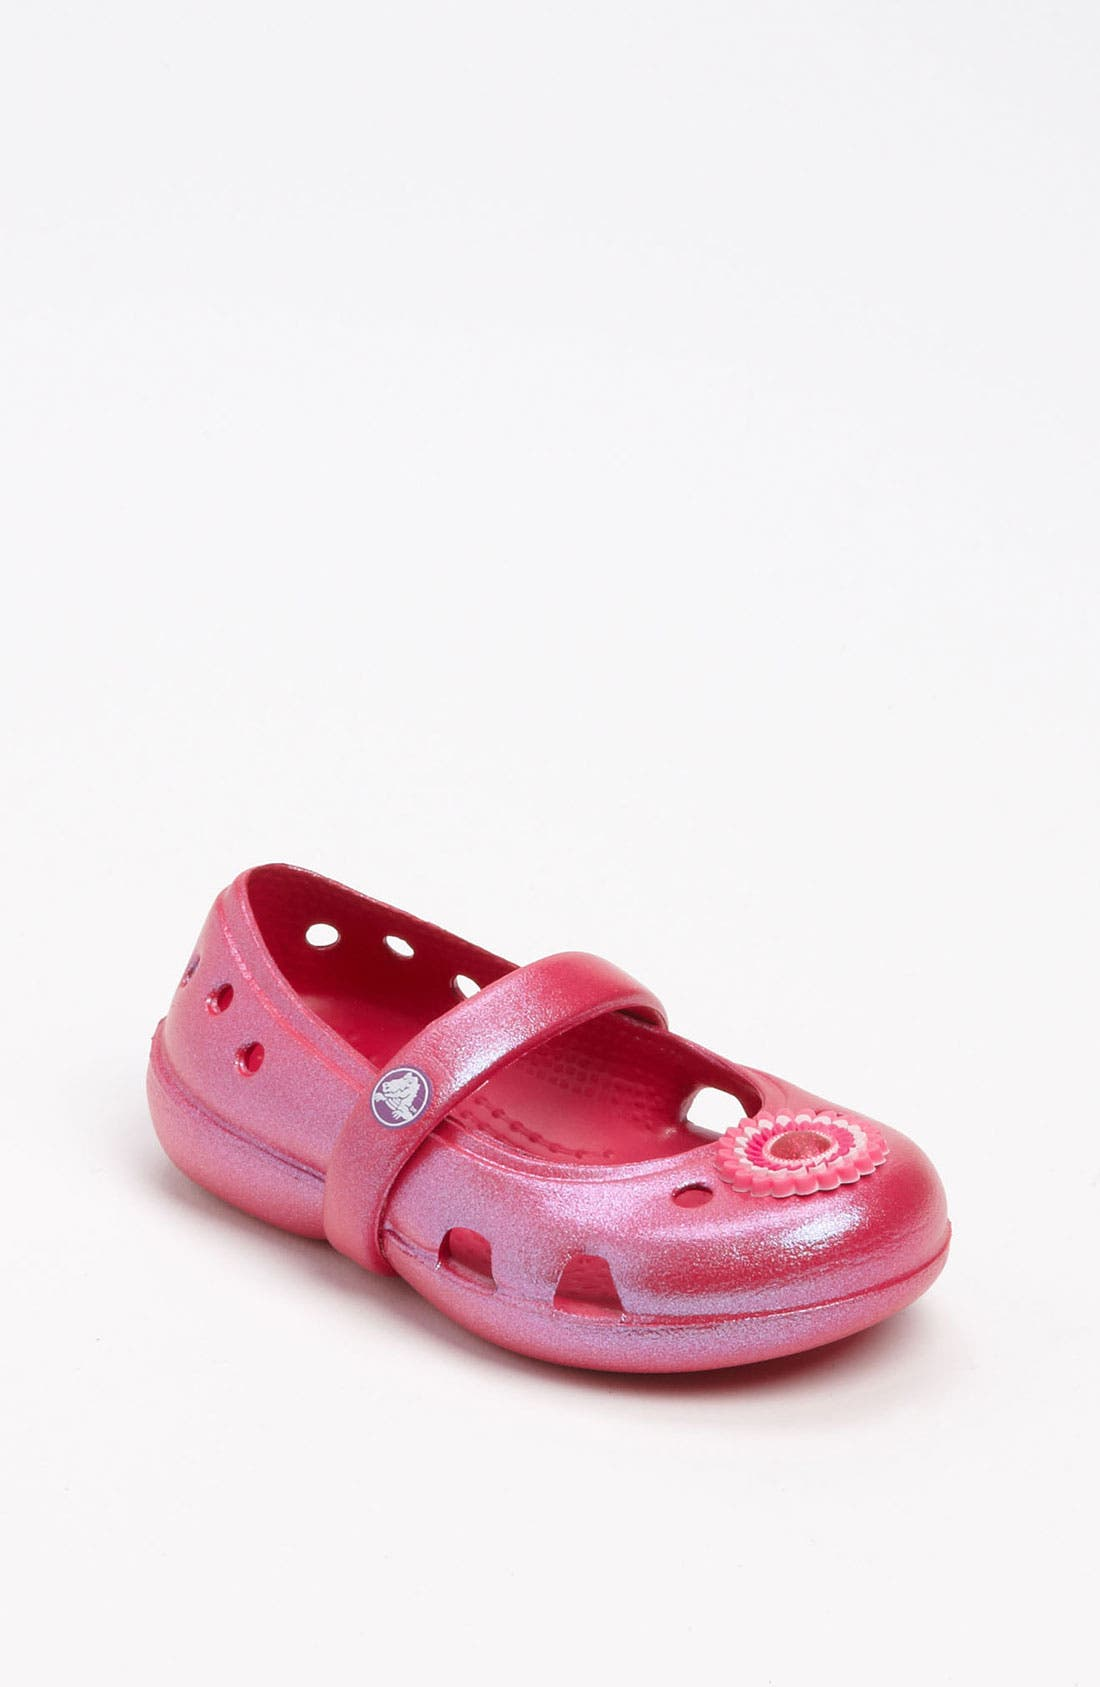 Main Image - CROCS™ 'Keeley Iridescent' Mary Jane (Walker, Toddler & Little Kid)